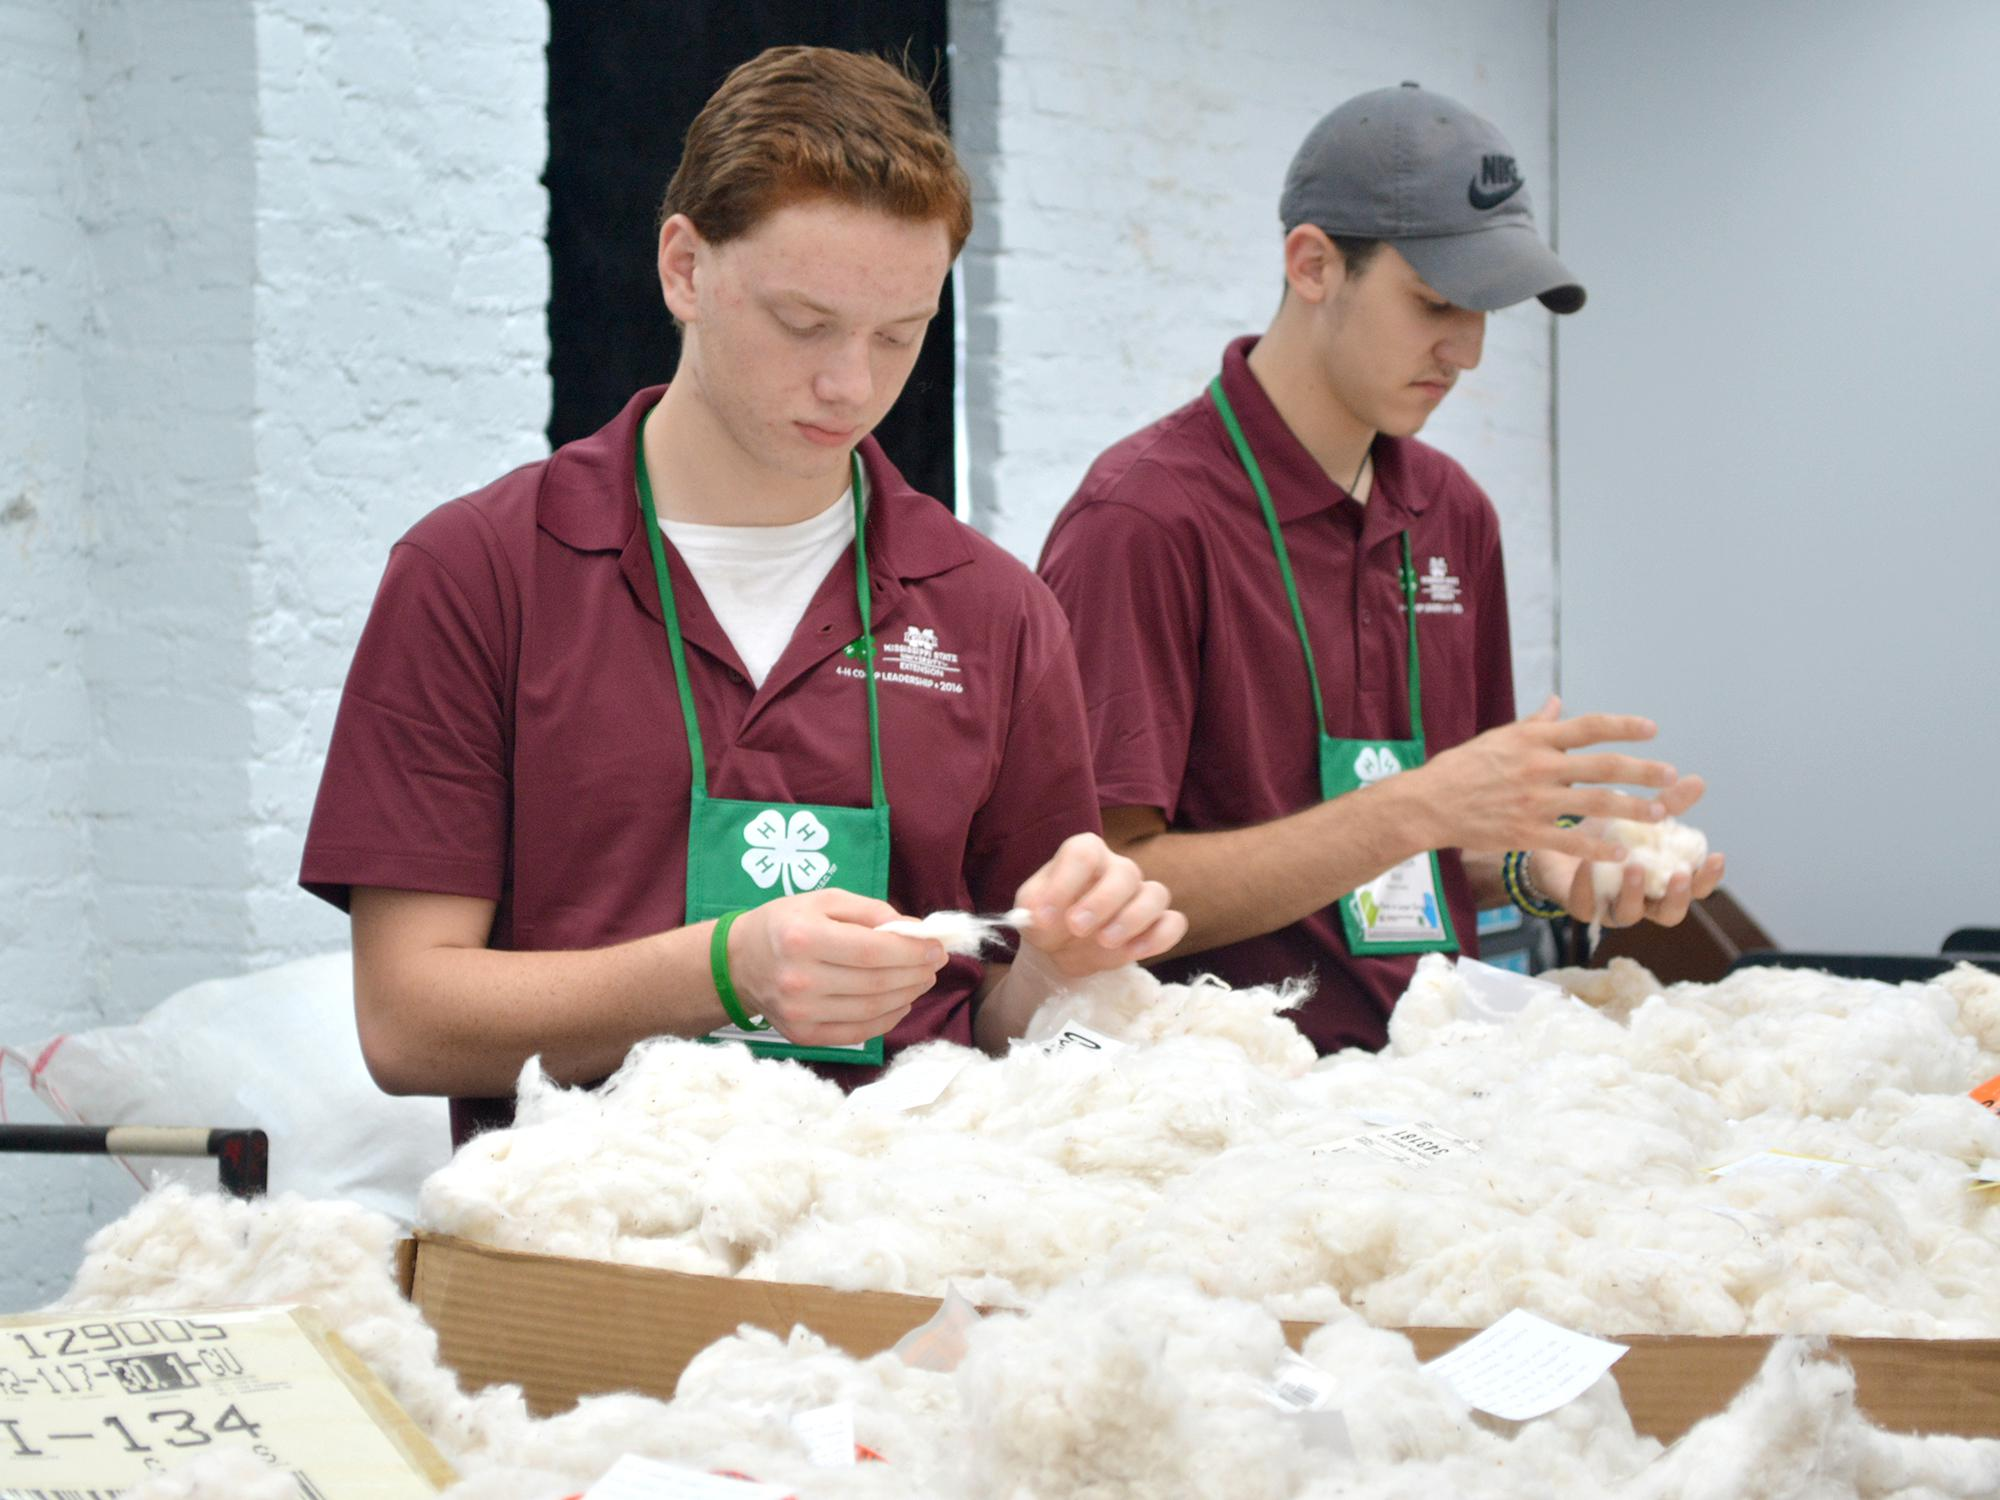 Thirty-four 4-H'ers learned leadership skills when they toured four co-ops as part of the 2016 Cooperative Business Leadership Conference. Here, Jonathan Pannell, left, of Alcorn County, and Thomas Heck of Hancock County examine cotton samples at Staplcotn in Greenwood. (Submitted Photo/Lauren Revel)